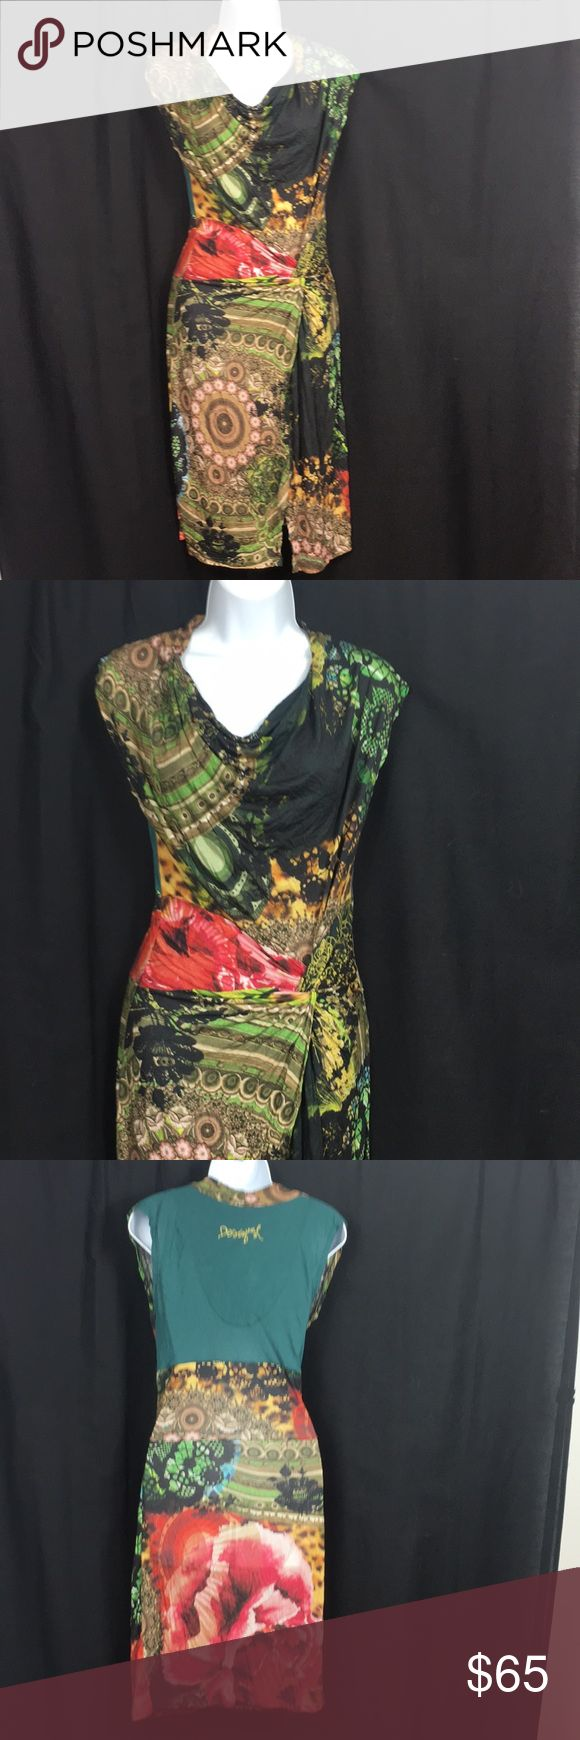 """Gorgeous Small Colorful  Pencil Dress Desigual size small just gorgeous gathered cowl pencil dress ..43"""" top to bottom laying flat ...18"""" armpit to armpit laying flat .. BUNDLE 3 or More SAVE 20%!!! Spend 💲20 or more and choose a FREE GIFT!!!!Choose your free gift by commenting on the item..... items with a 🎁 qualify as a free gift! Desigual Dresses"""